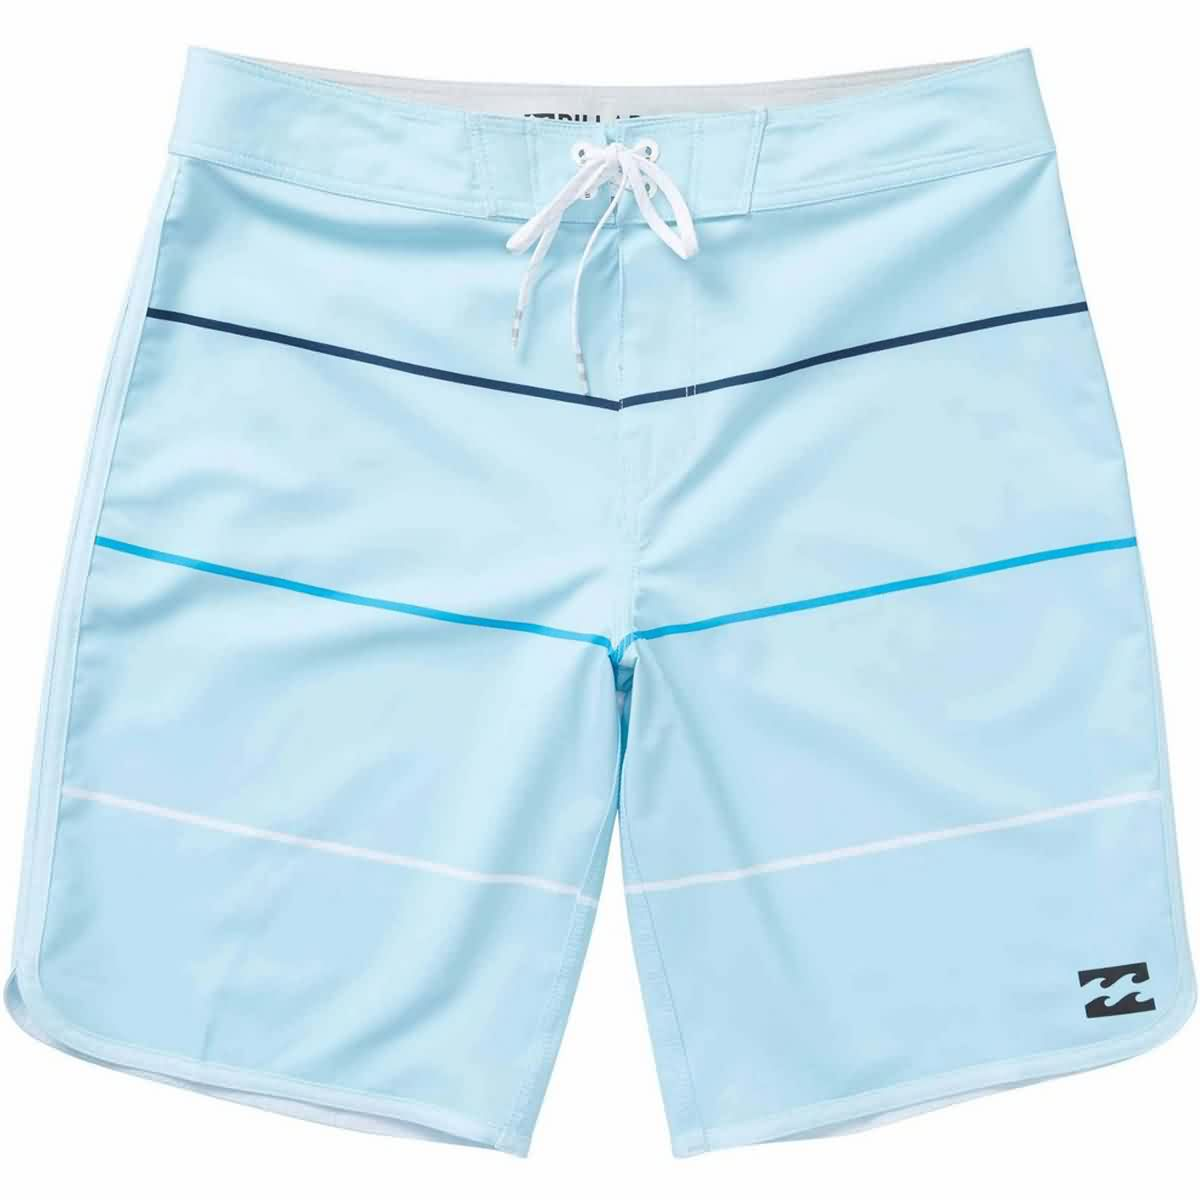 Billabong 73 X Stripe Men's Boardshort Shorts-M138LSTX